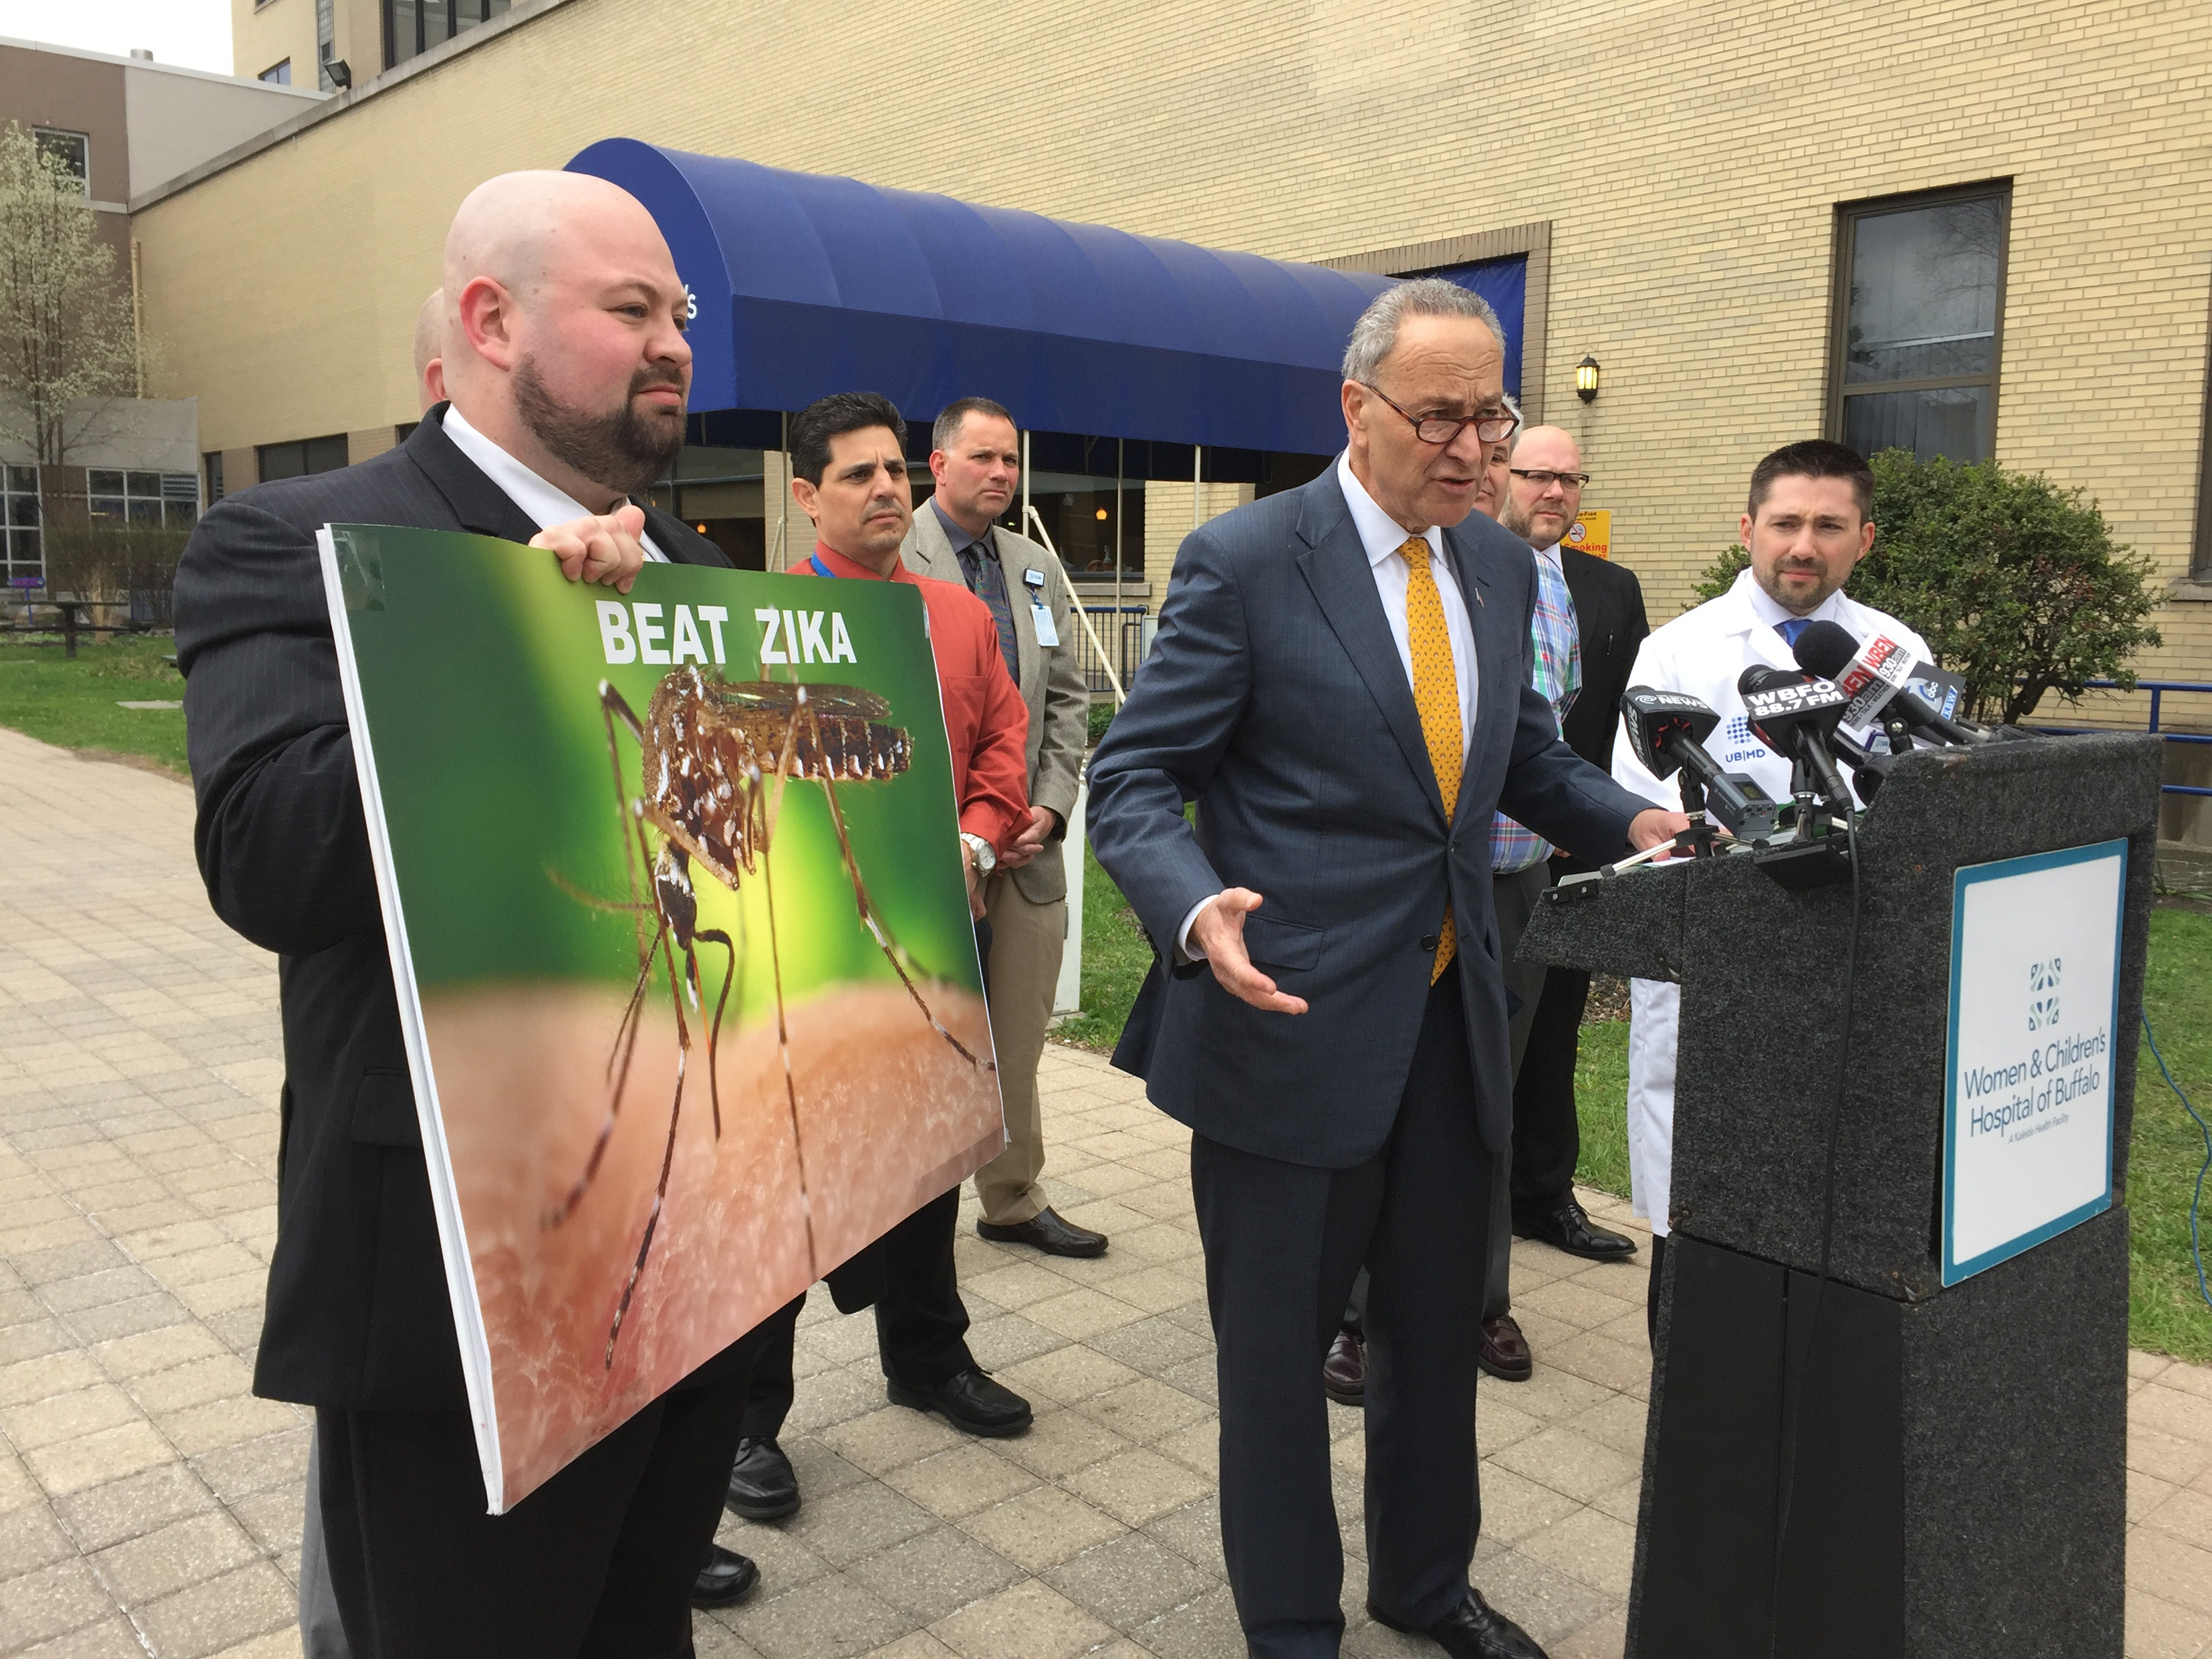 Sen. Charles Schumer made an appearance in Buffalo Monday to call for swift approval of nearly $2 billion to fight the zika virus. (Aaron Besecker/Buffalo News)